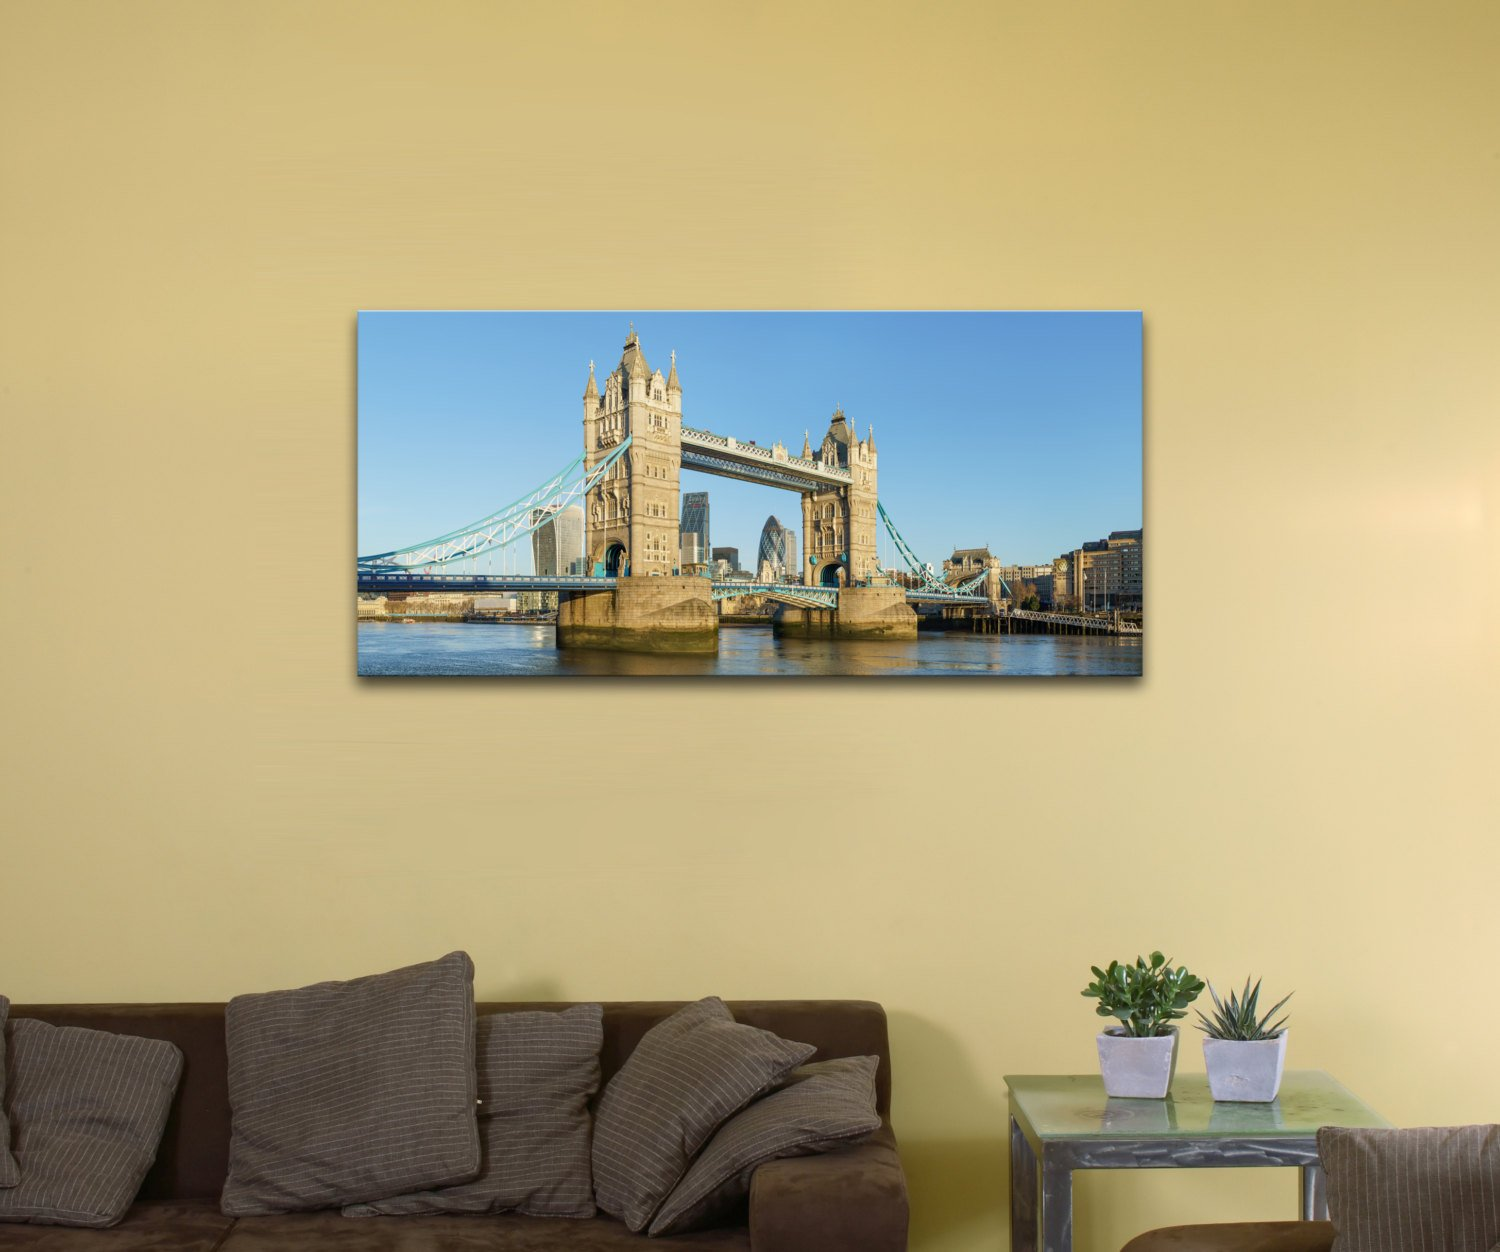 "Tower Bridge, United Kingdom (12"" x 16"") - Canvas Wrap Print"